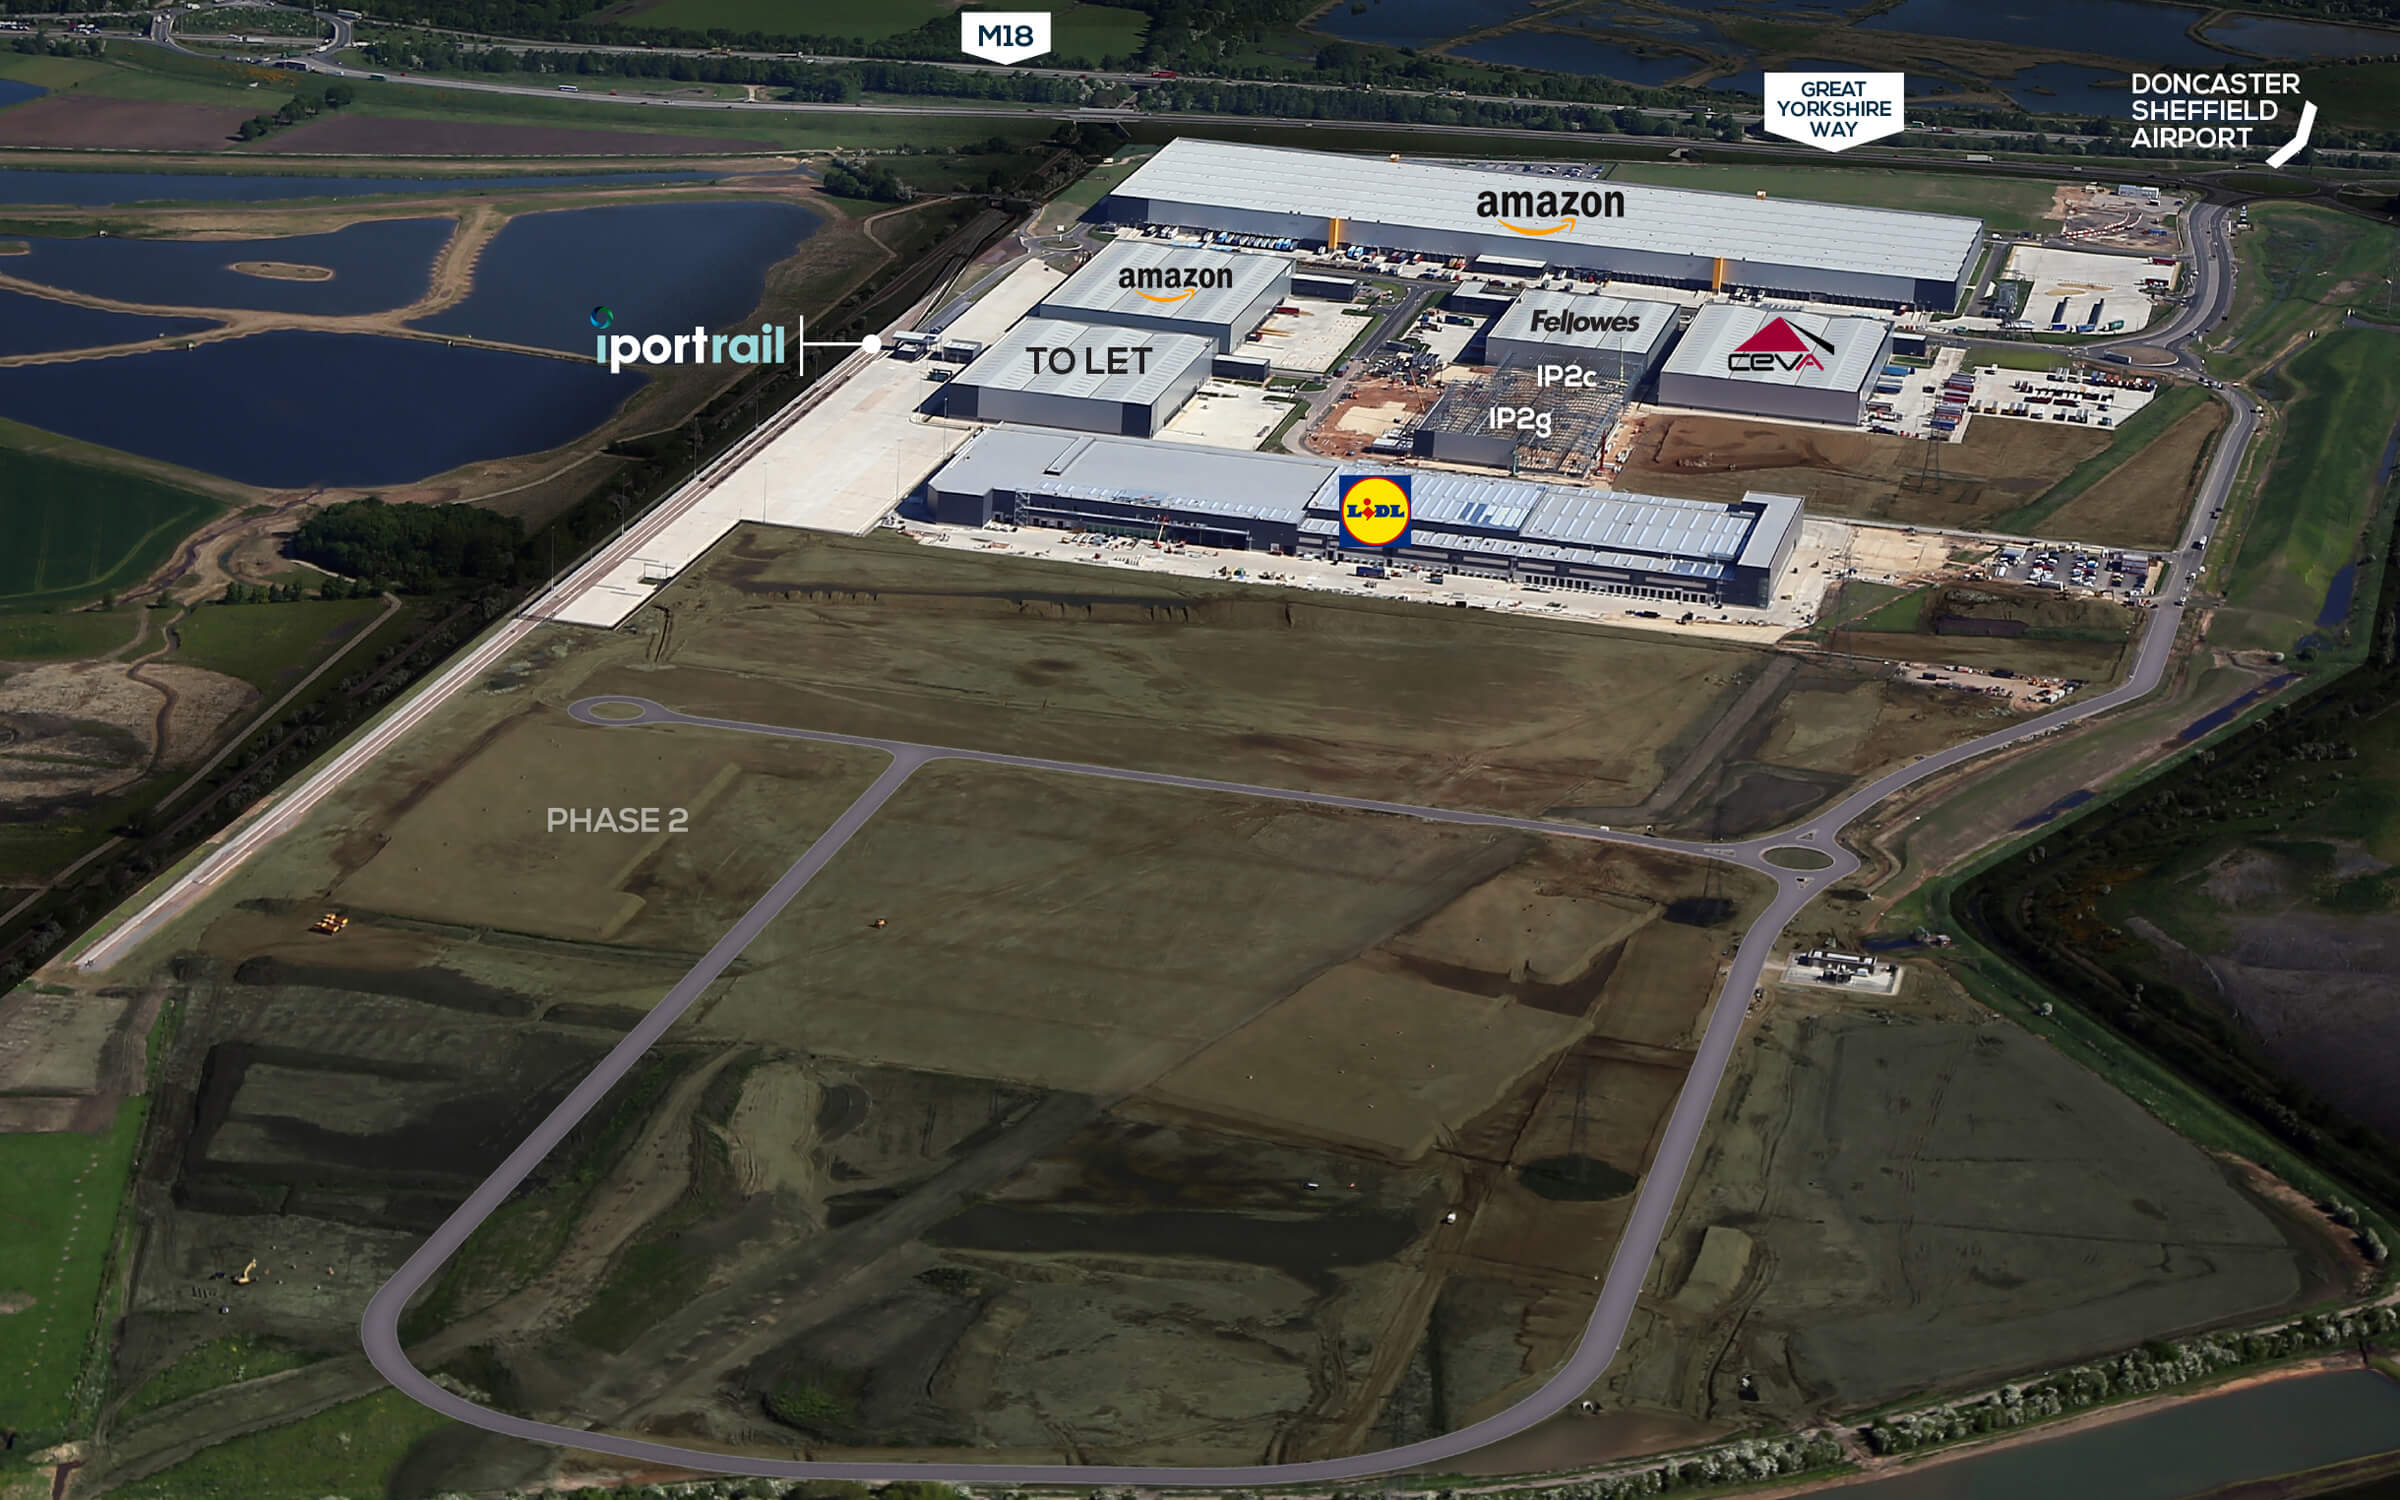 iPort Doncaster Aerial